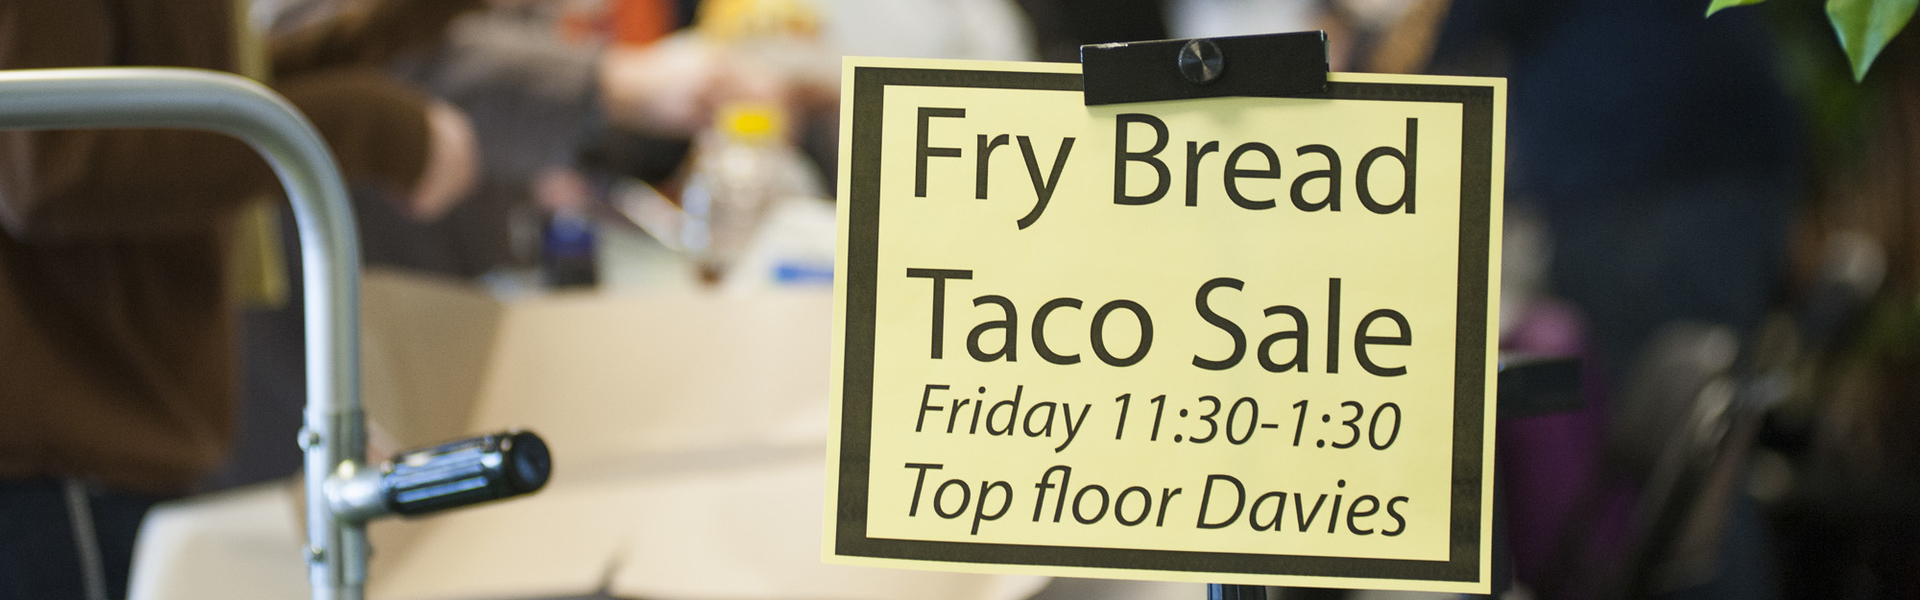 Fry Bread sale sign, student run event